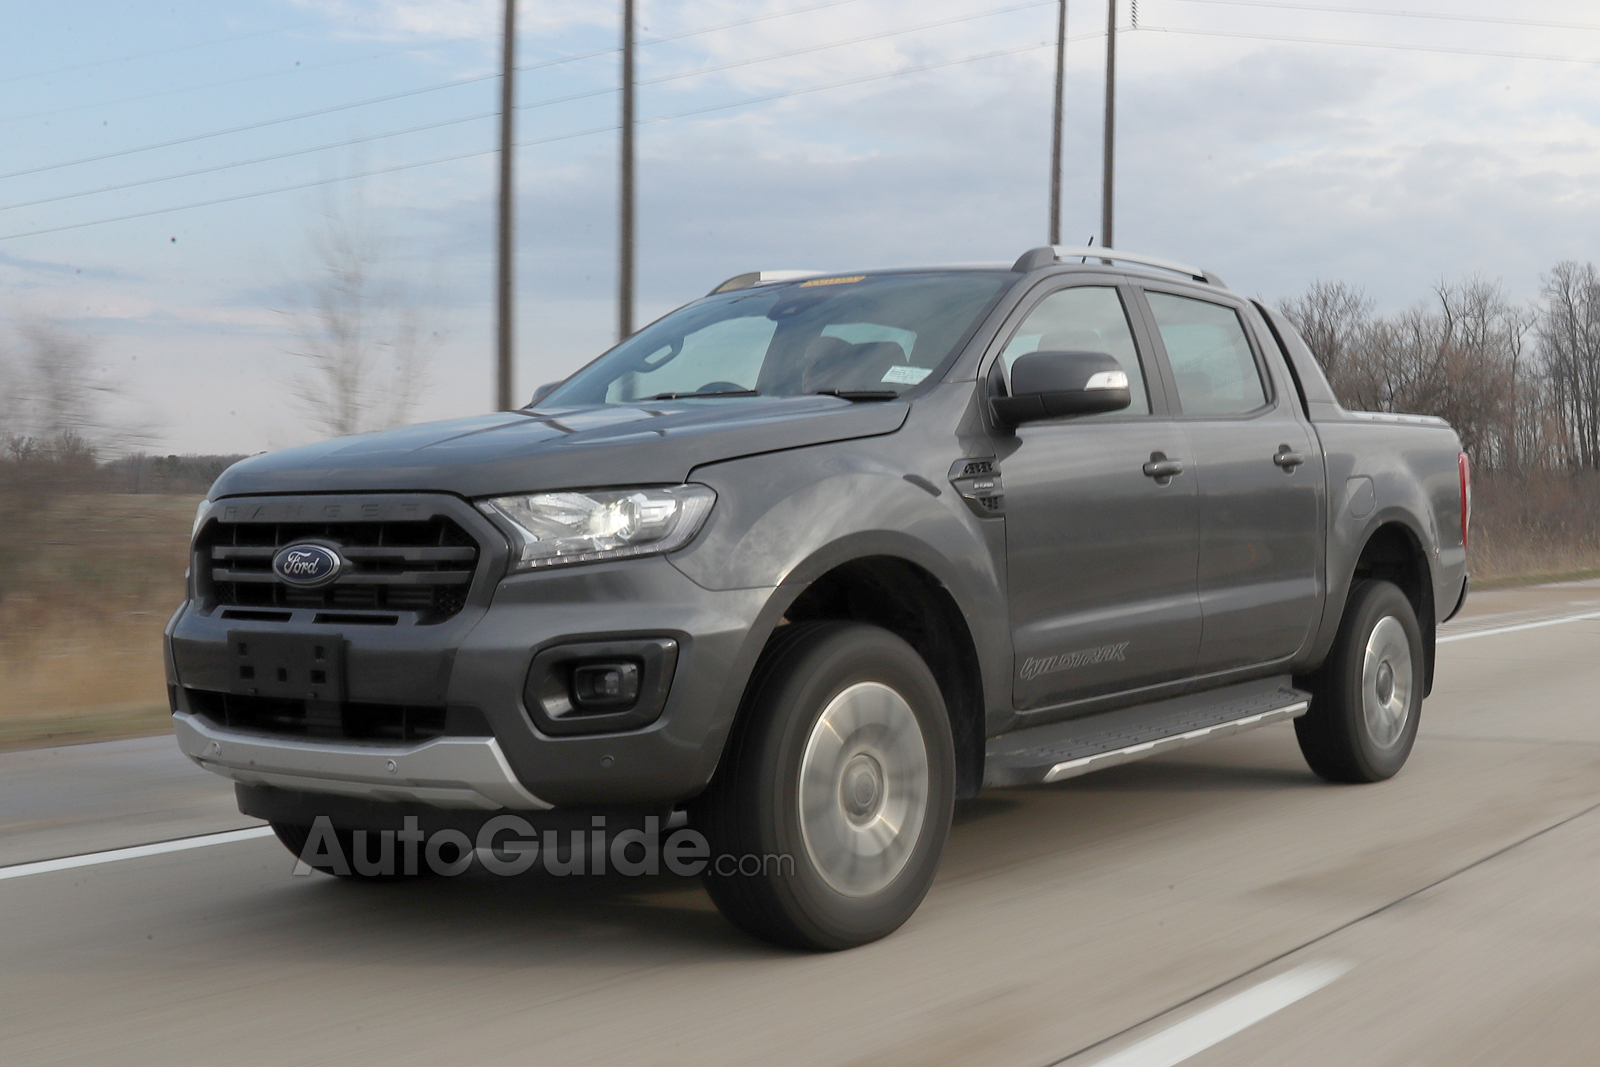 2019 Ford Ranger Wildtrak Spied Inside and Out AutoGuide News